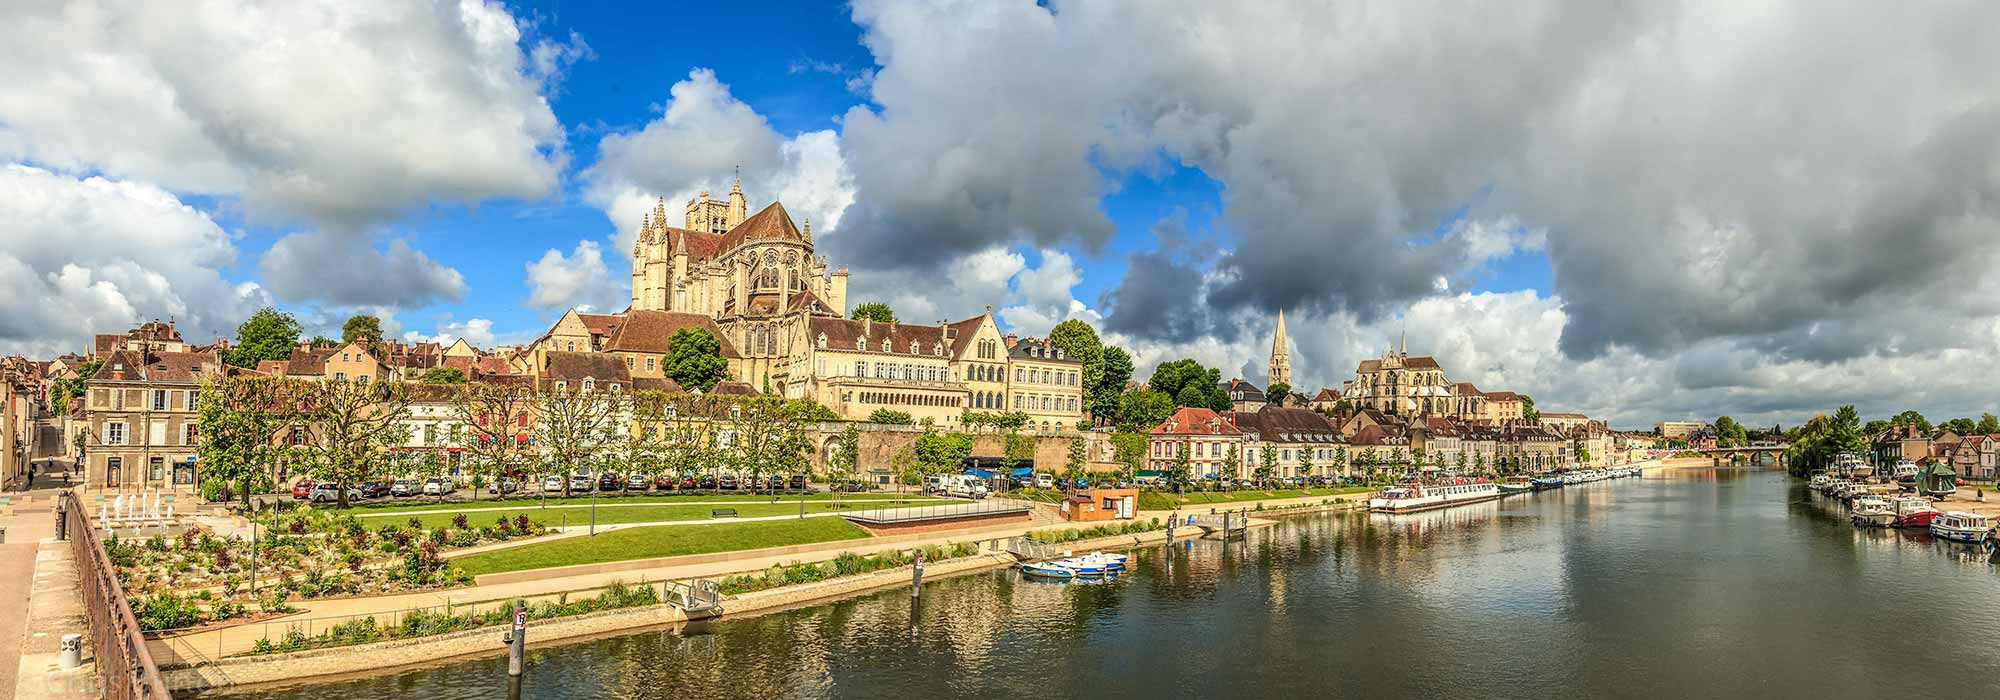 The Village of Auxerre, France International Landscape Photography, by Chris Burton.